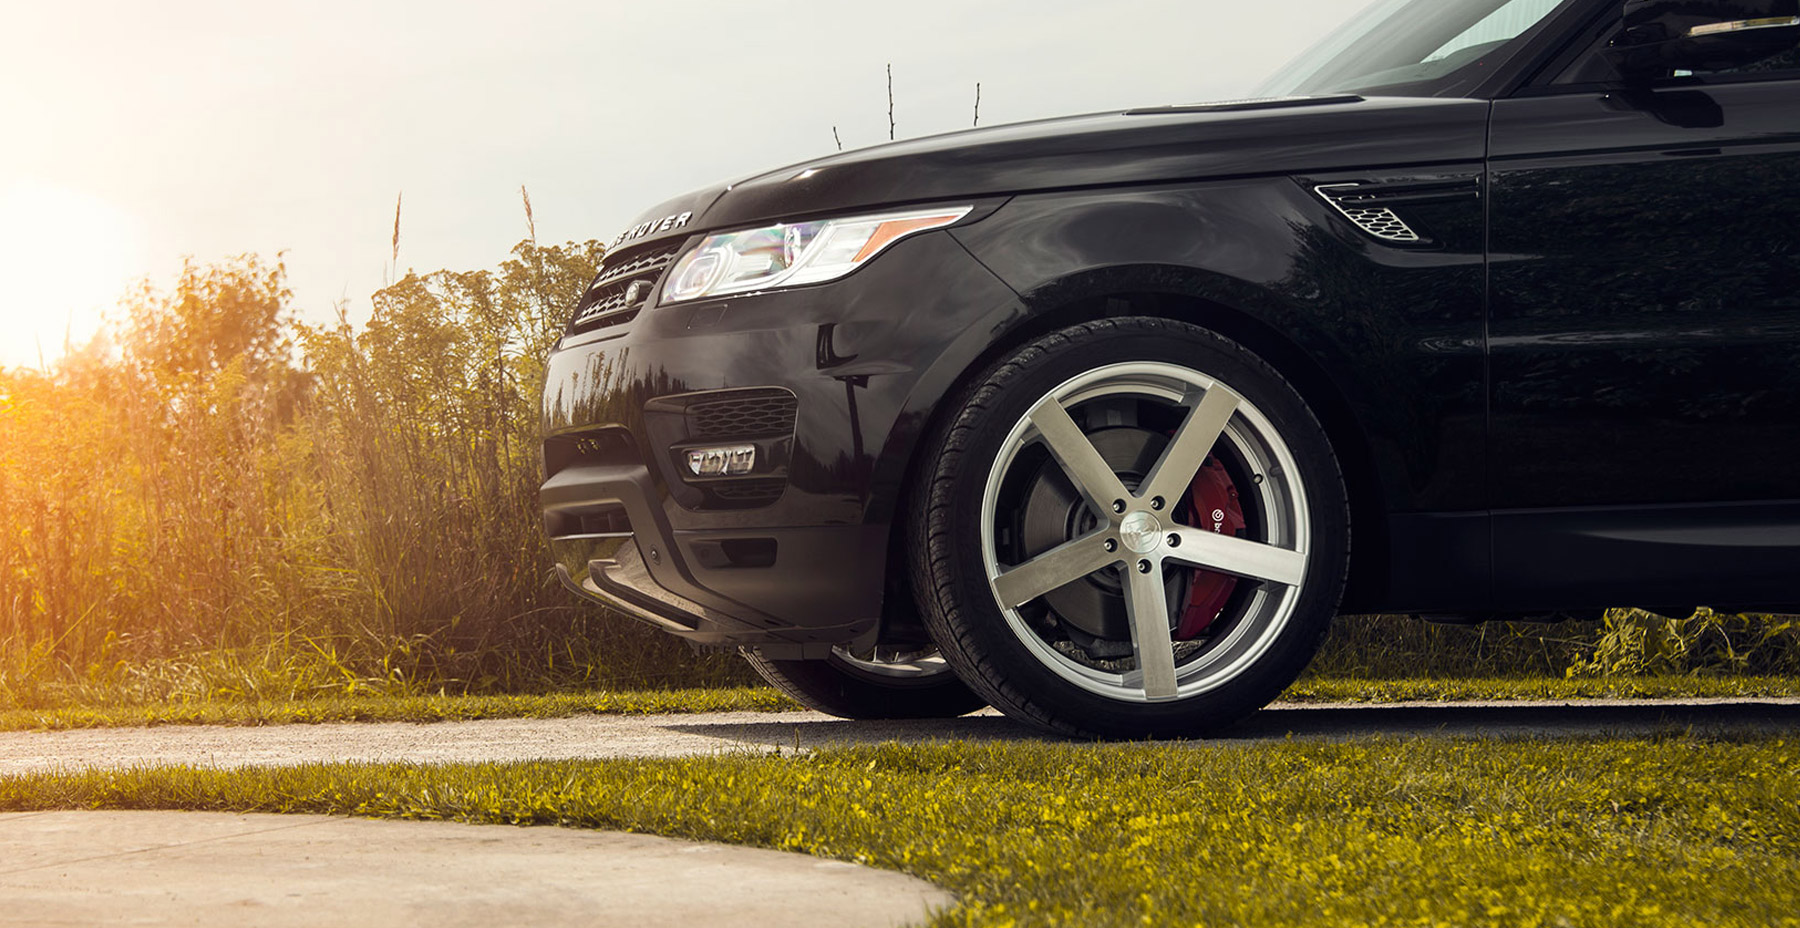 Black Land Rover Range Rover x Rohana RC22 Wheels (Finished in Machine Silver)